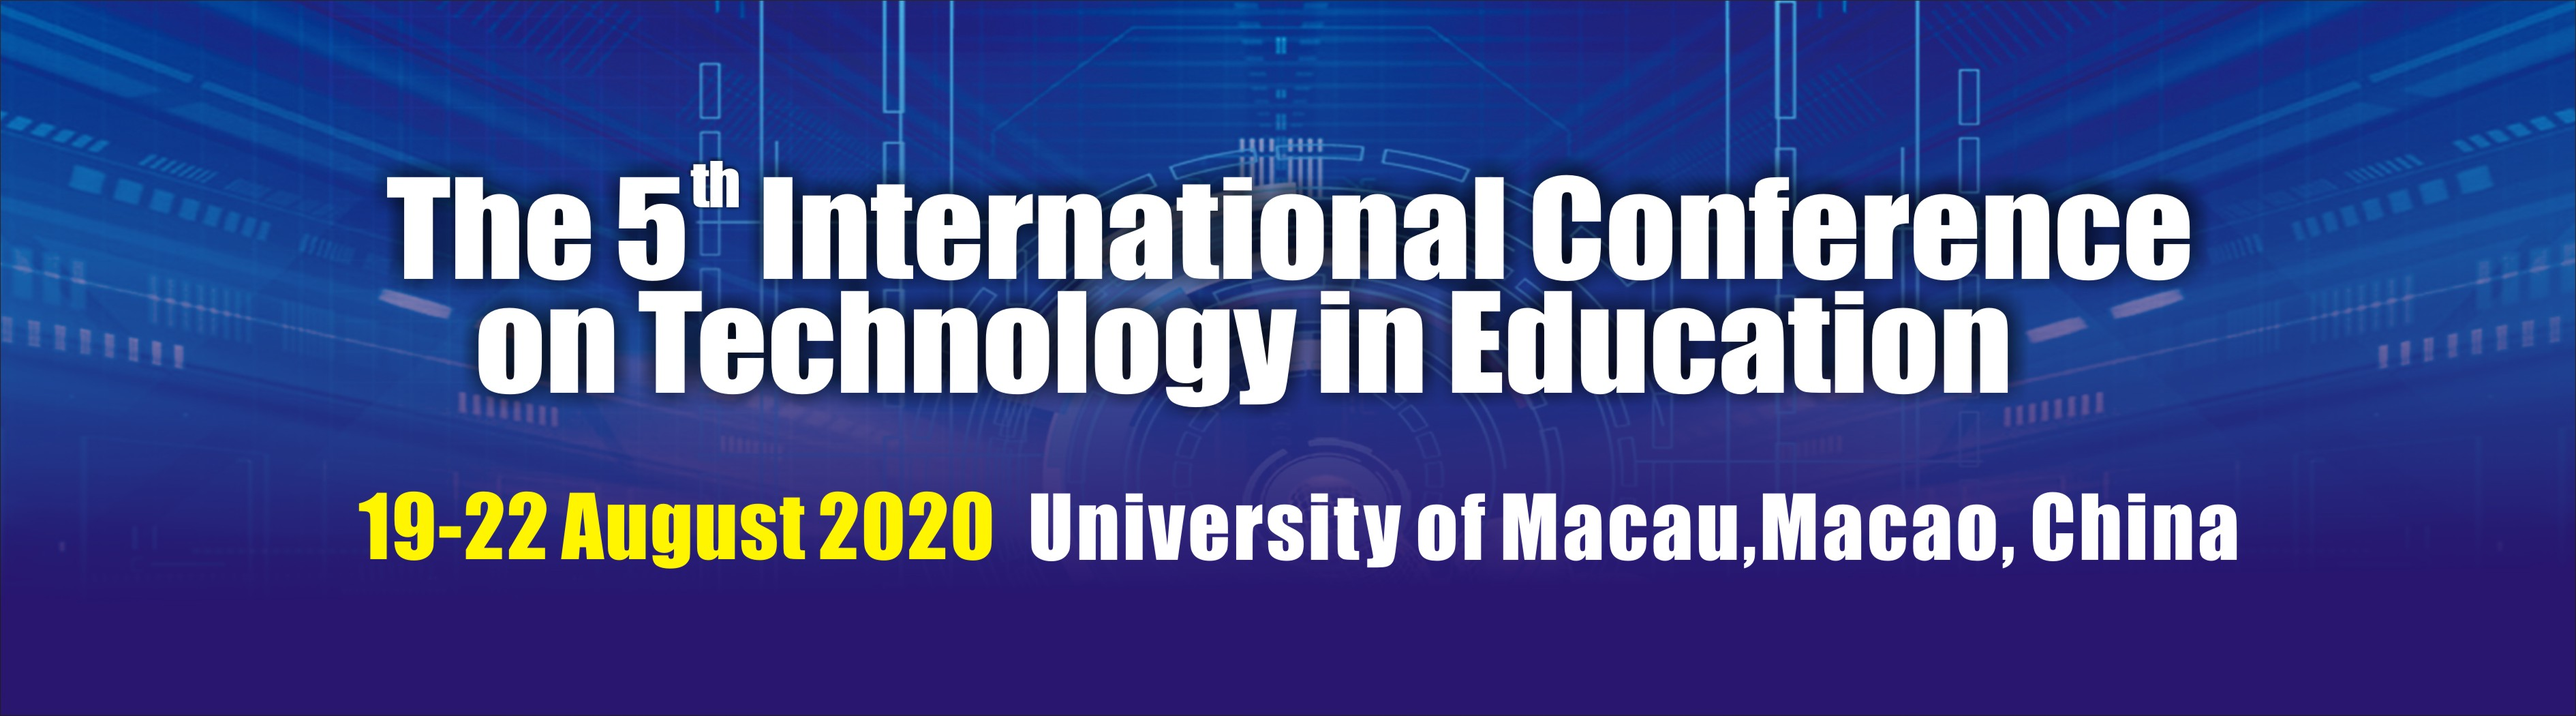 The 5th International Conference on Technology in Education